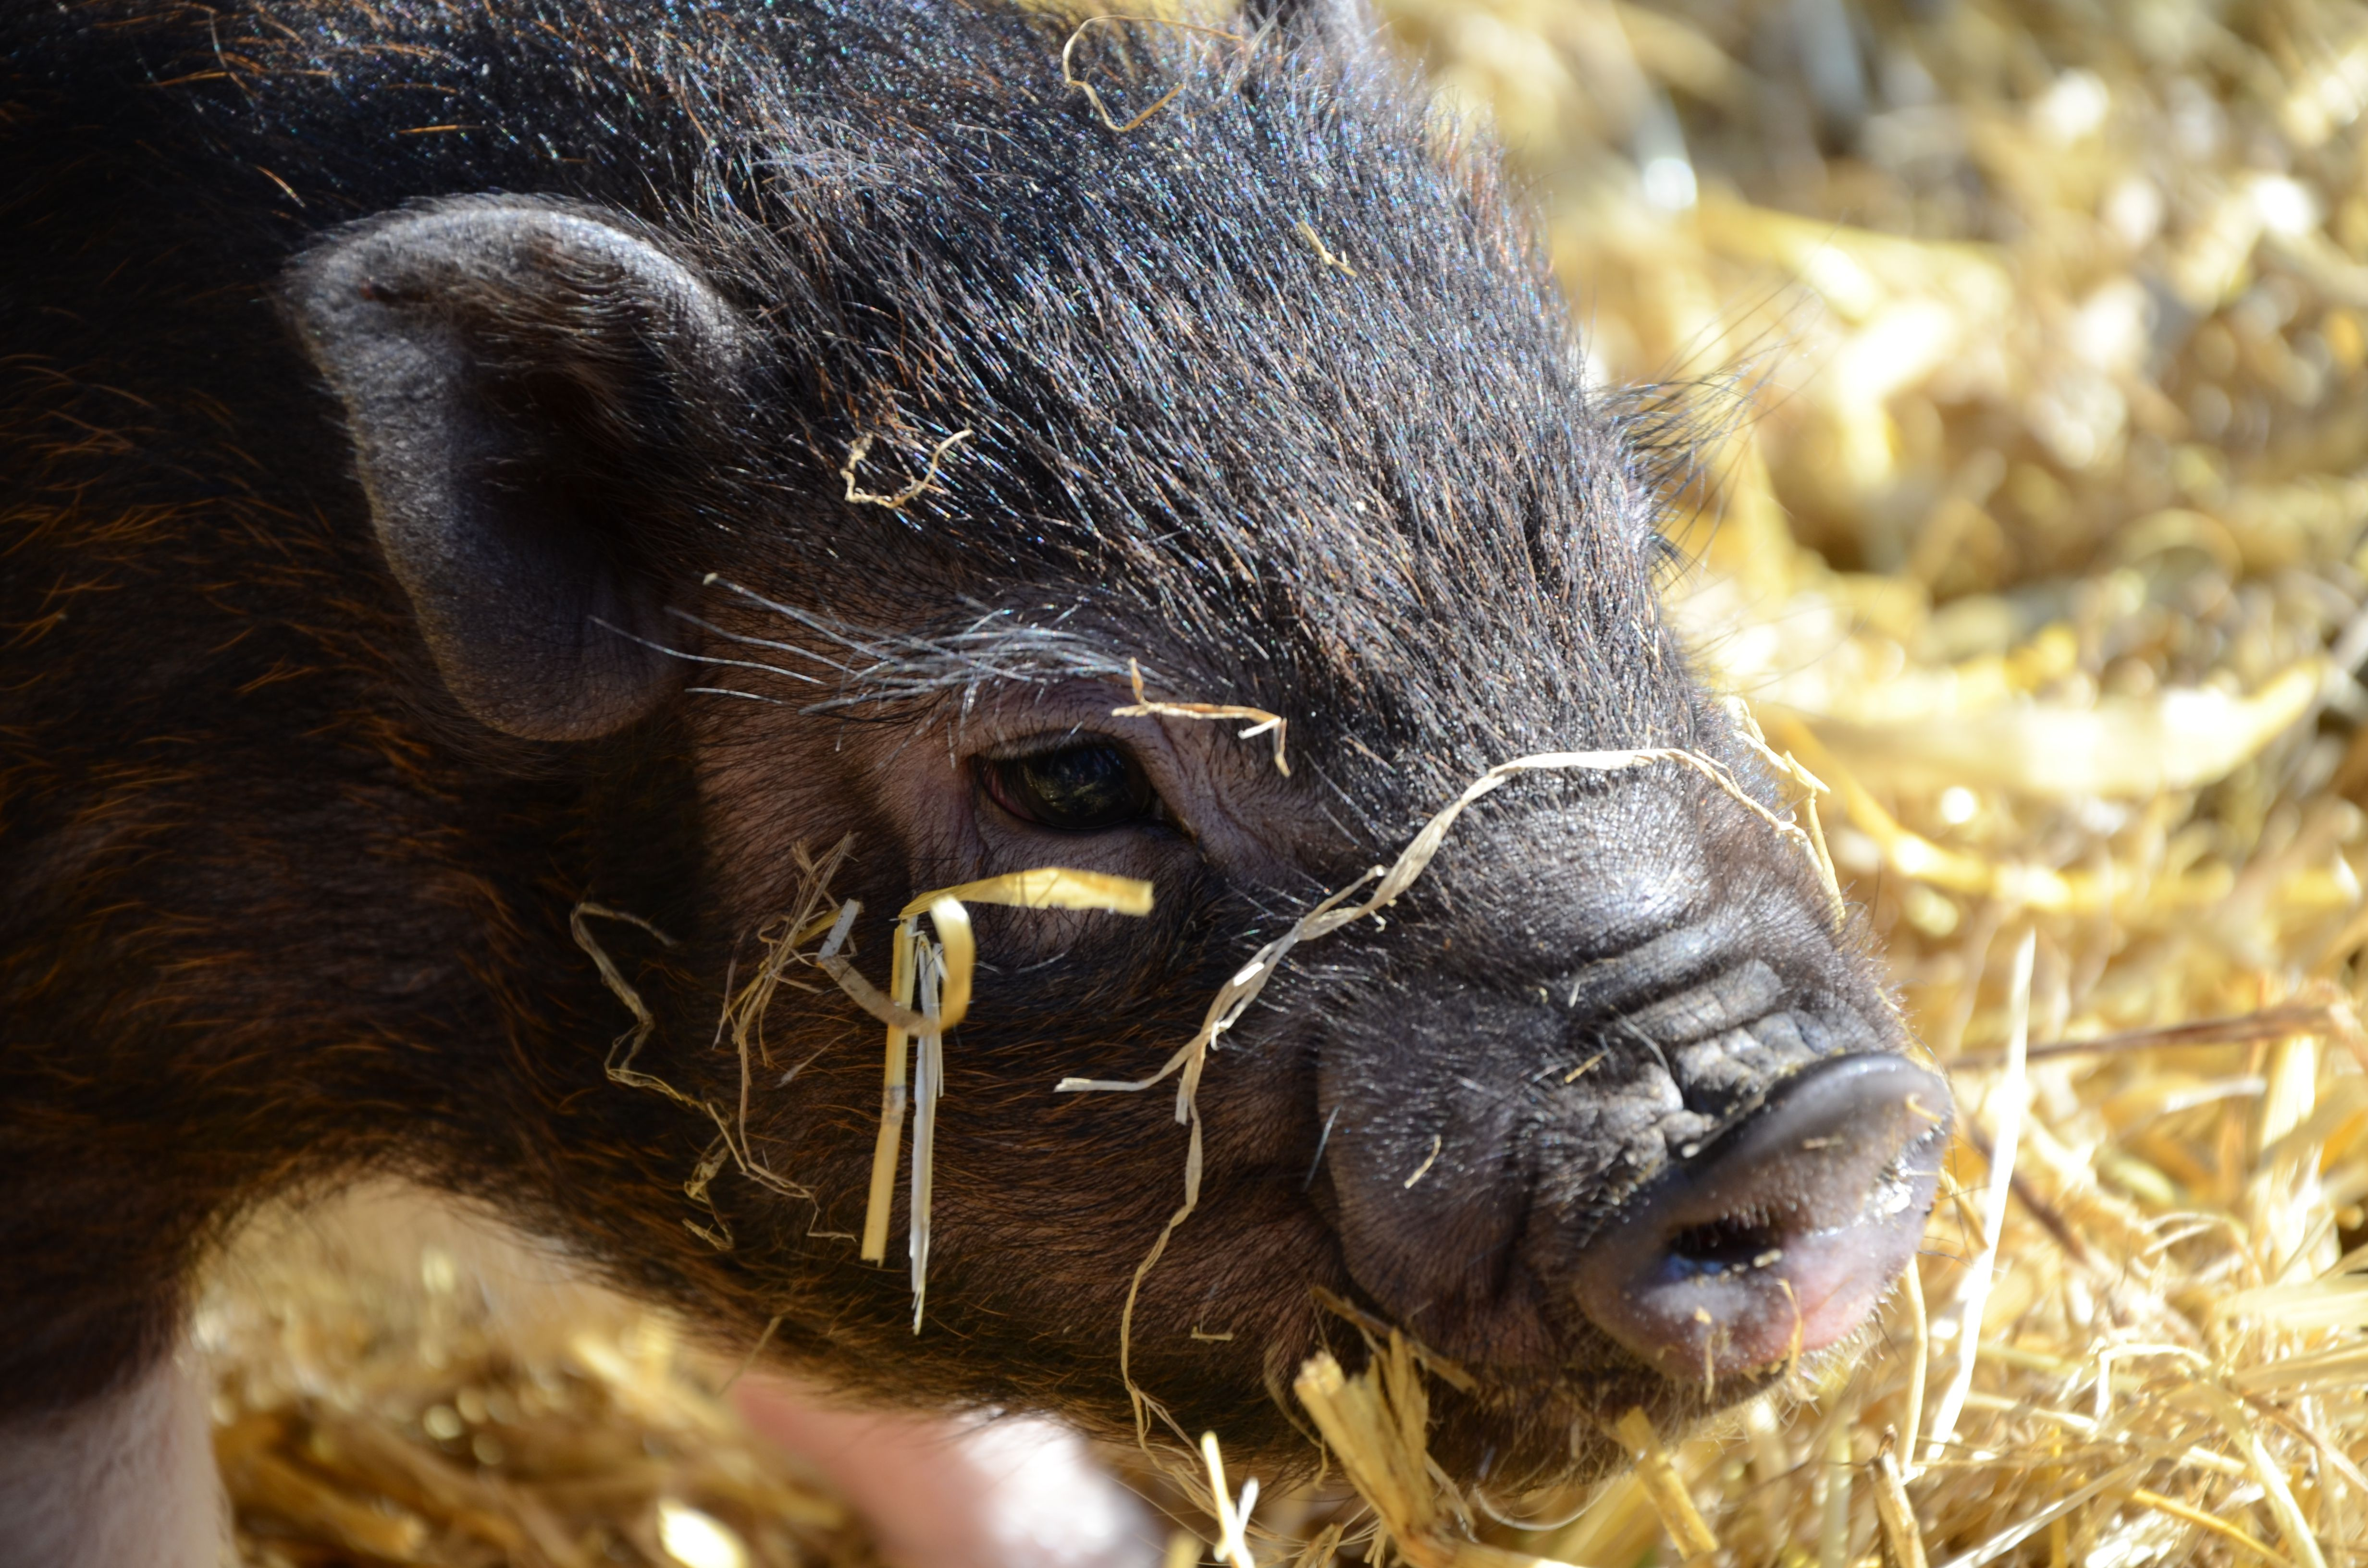 Close-Up Of Pot-Bellied Pig On Hay